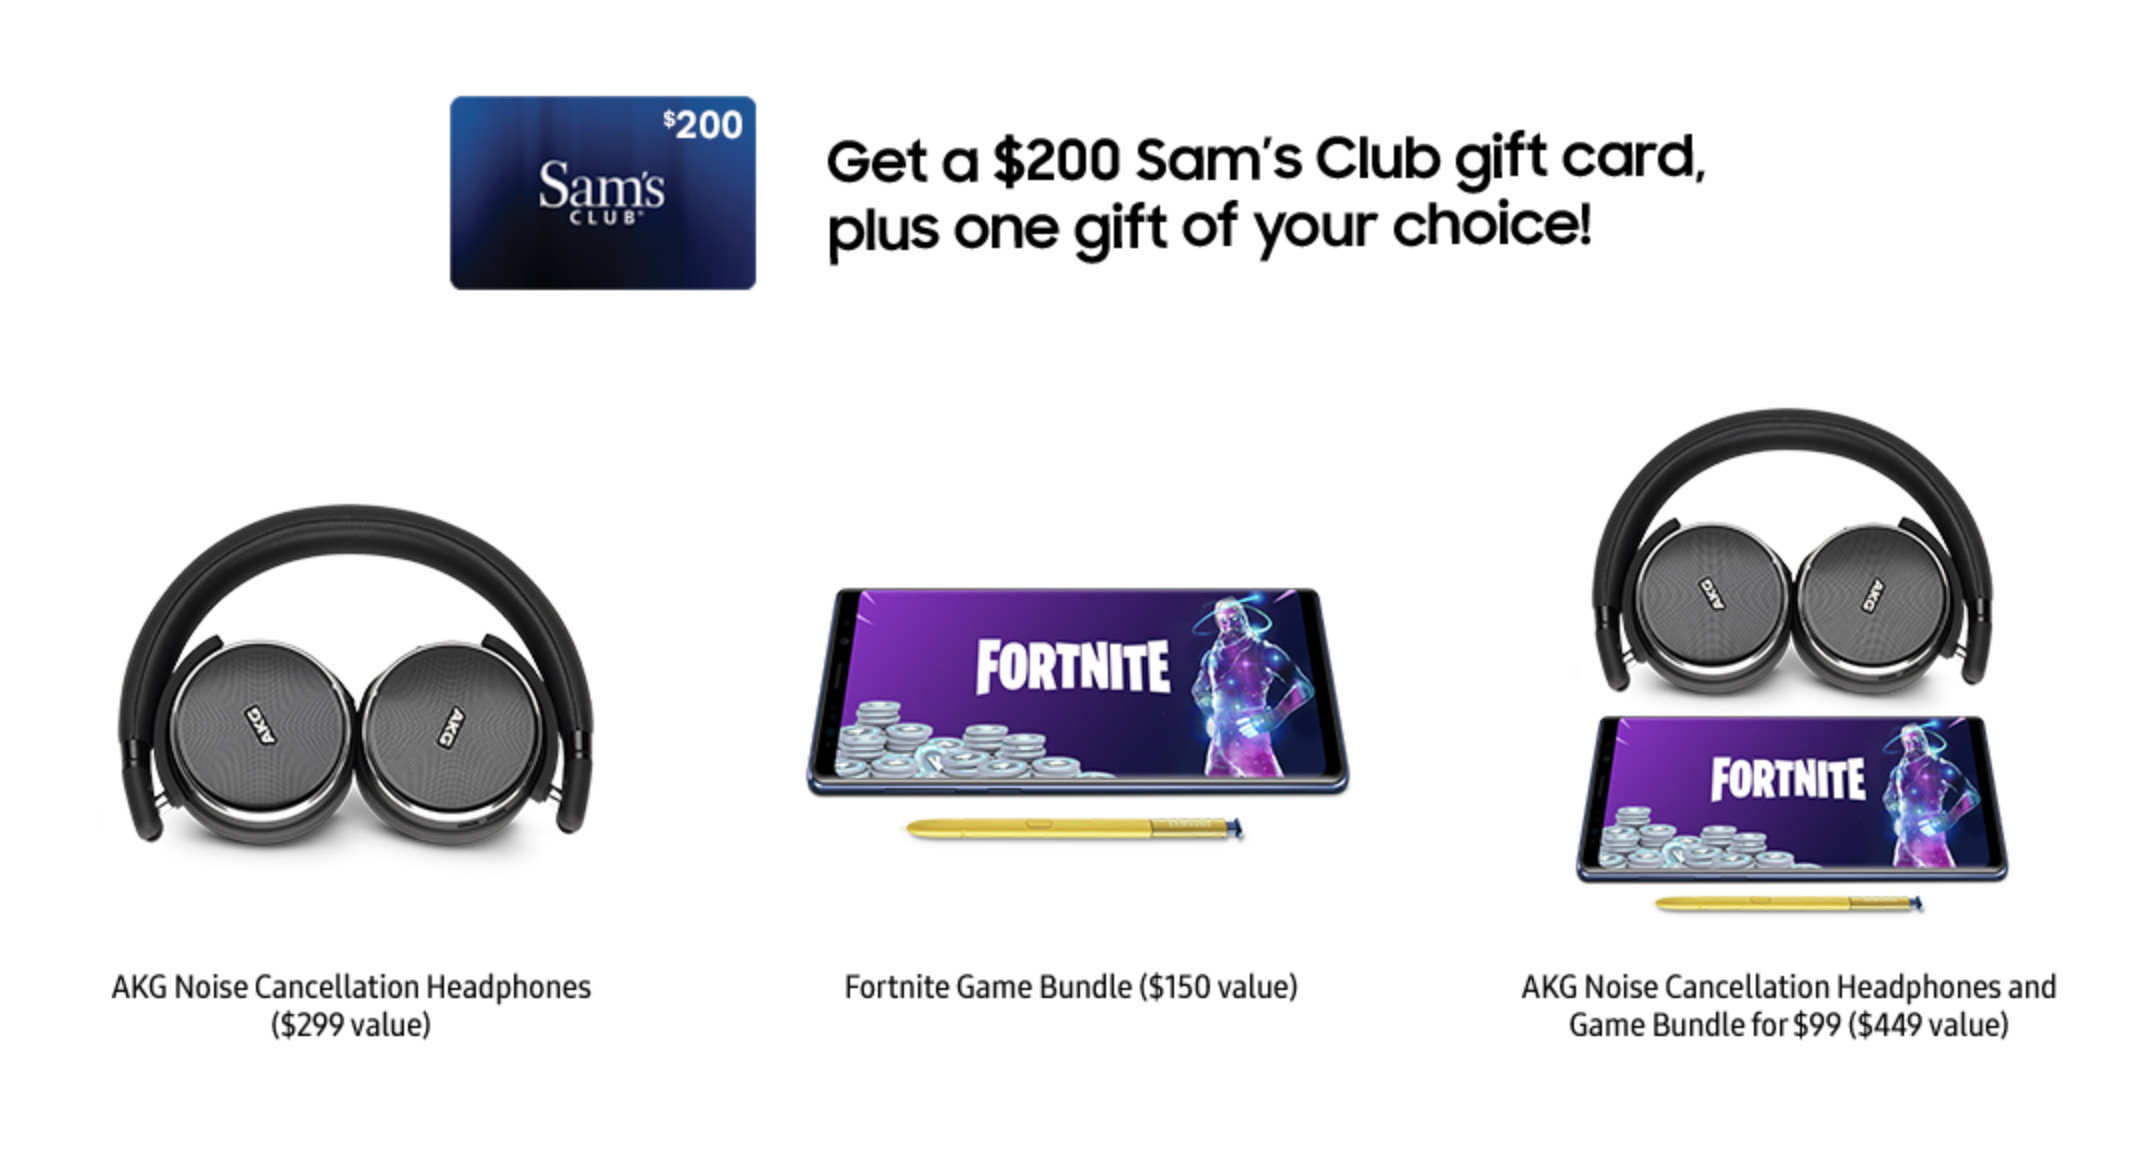 sam s club is offering a 200 gift card as a pre order bonus for the